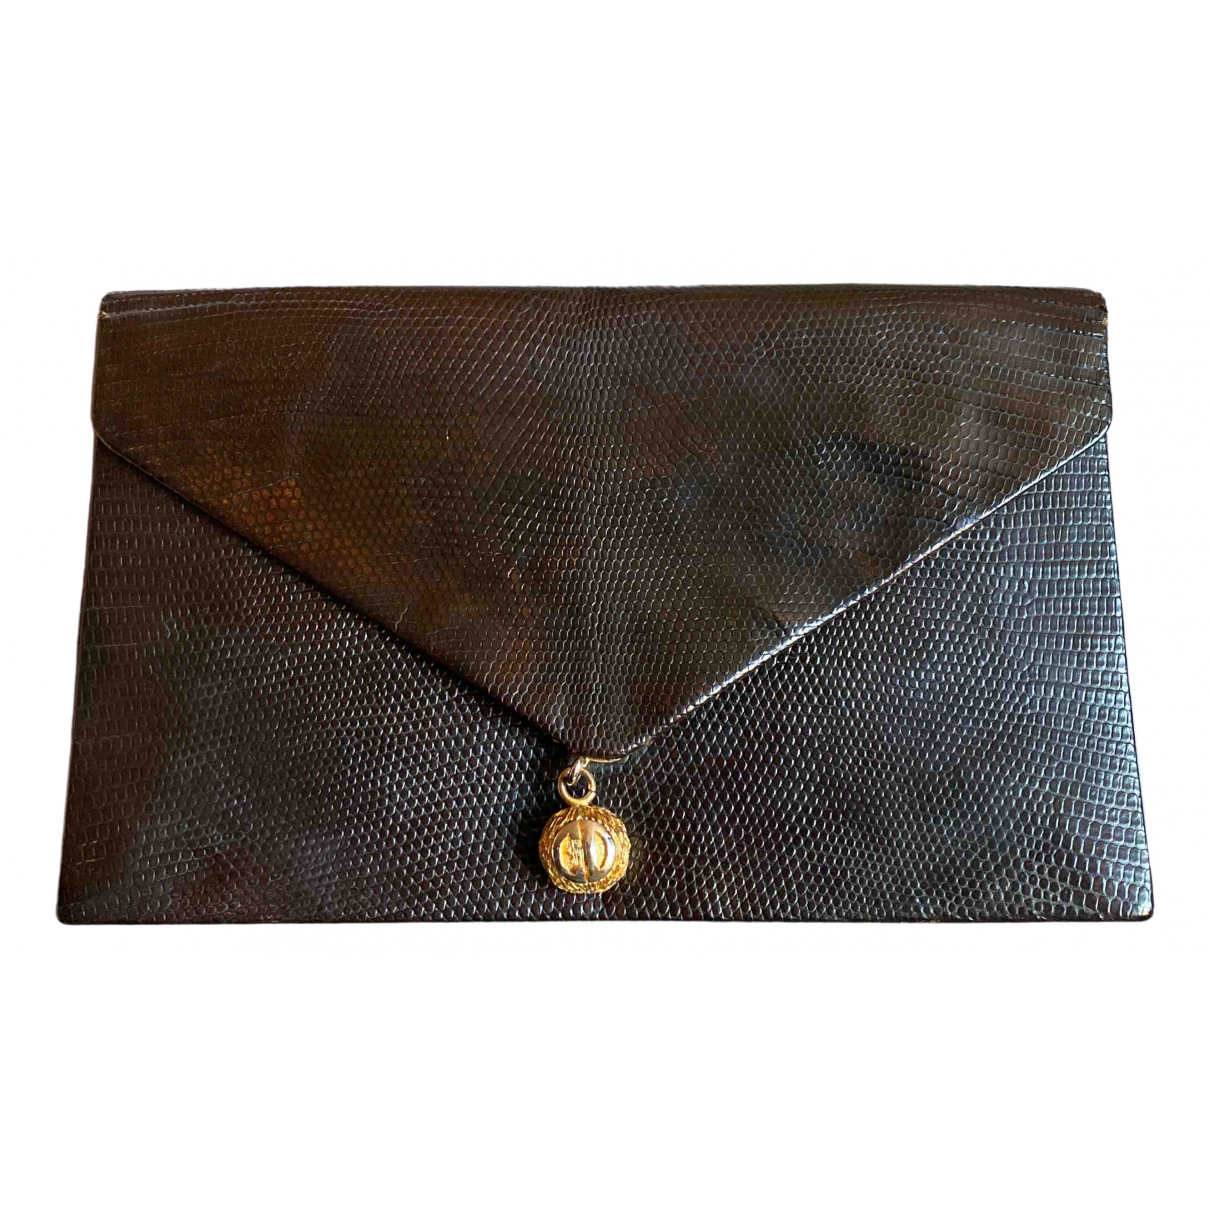 Dior N Brown Exotic leathers Clutch bag for Women N